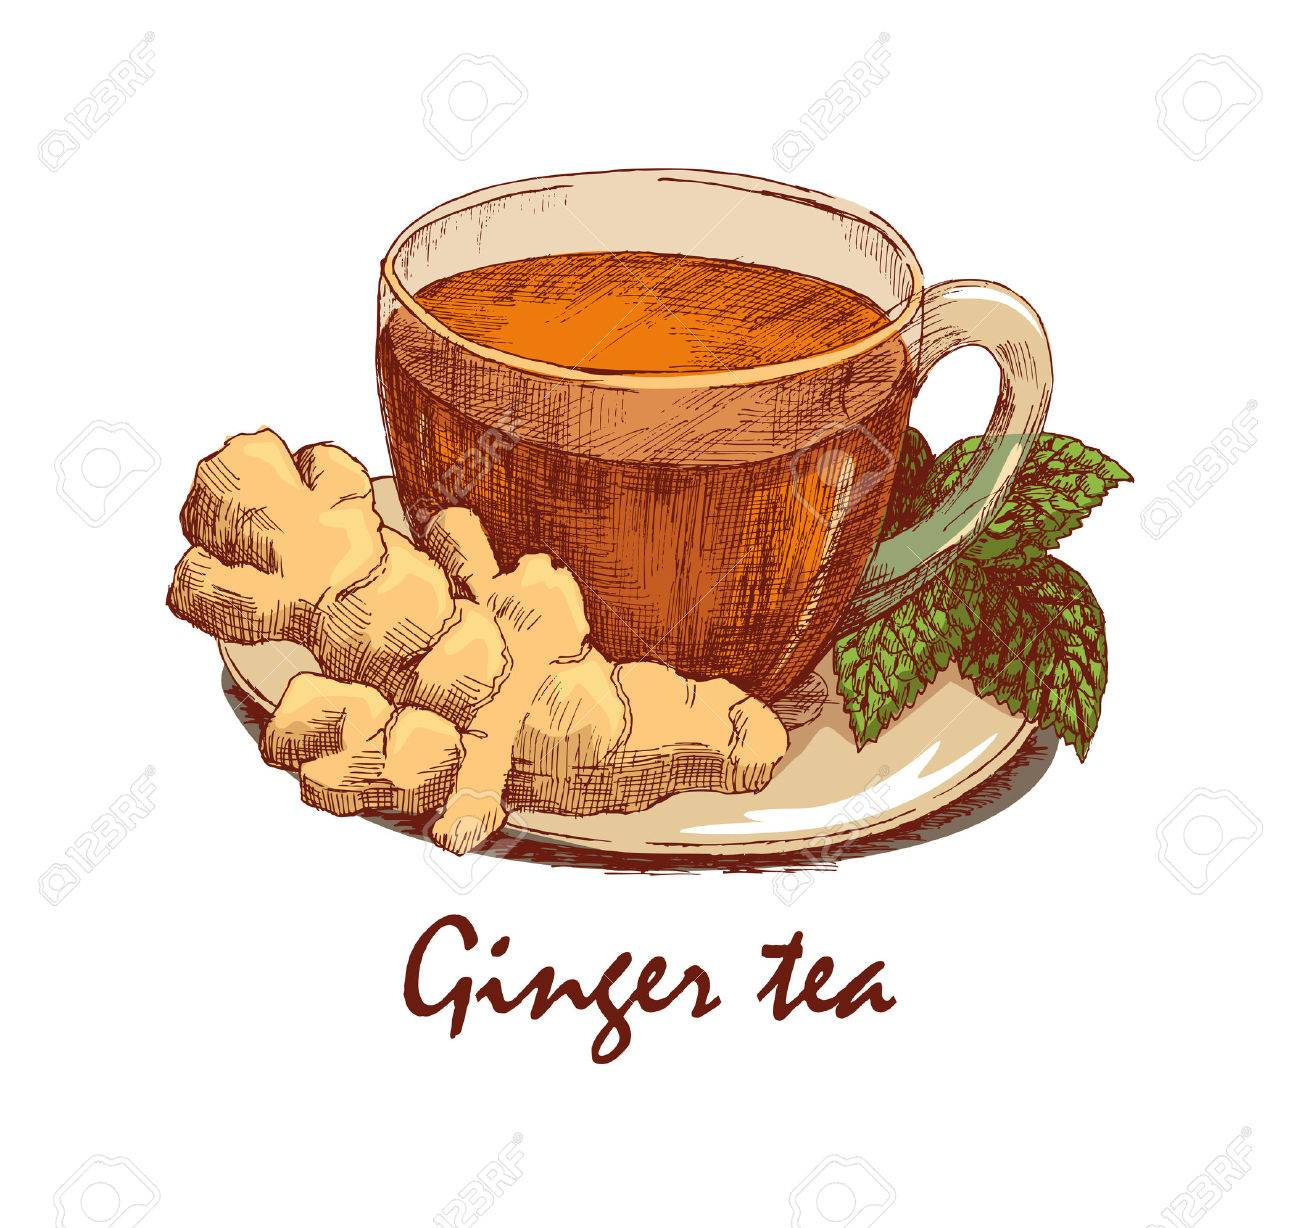 Ginger Desenho with regard to colored hand drawn cup of ginger tea. cup with tea, ginger rhizome